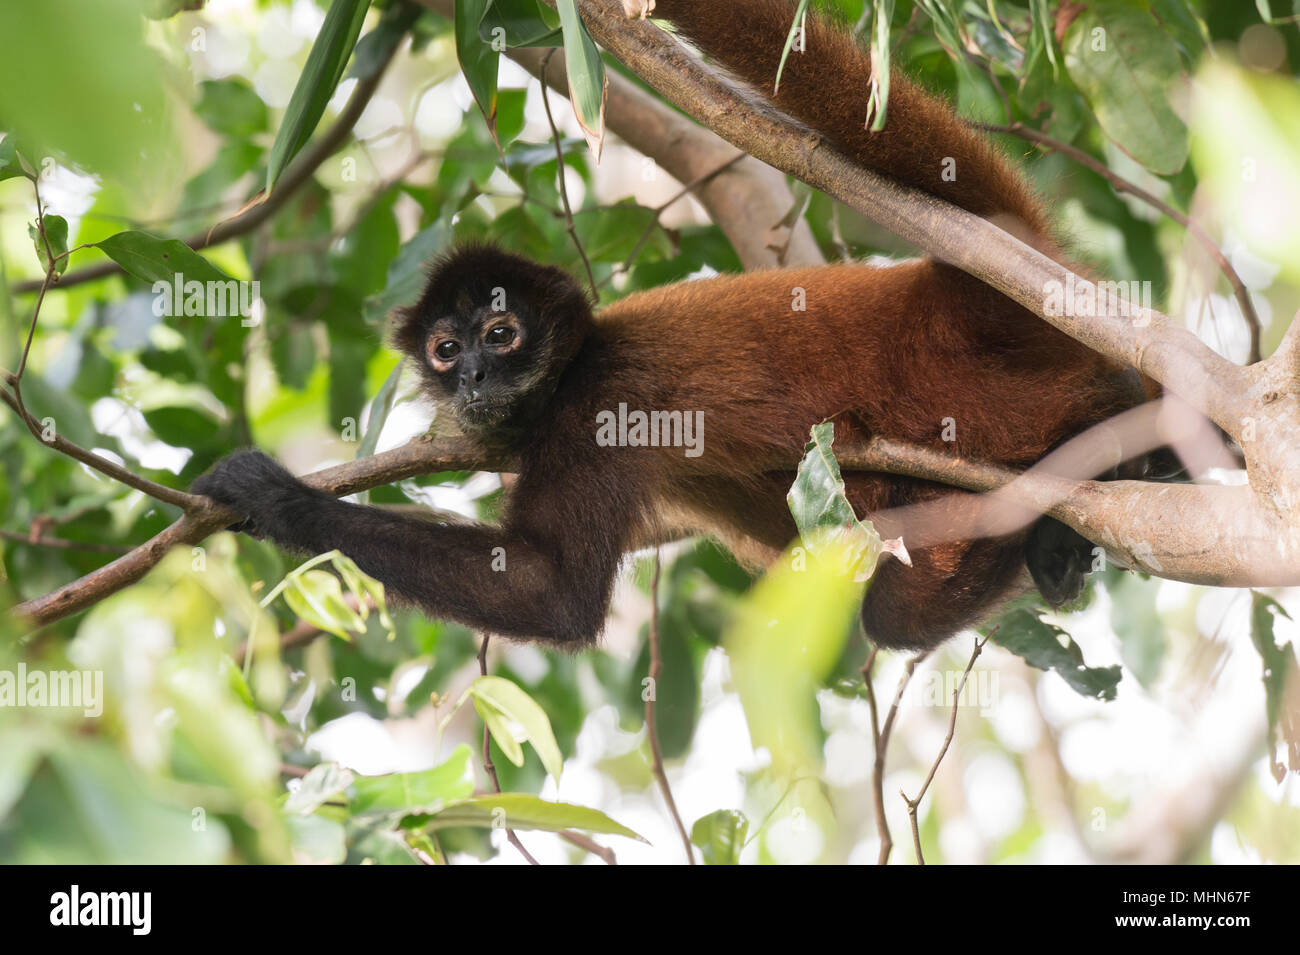 Central American Spider Monkey, Ateles geoffroyi, Cebidae, Corcovado National Park, Costa Rica, Centroamerica Stock Photo